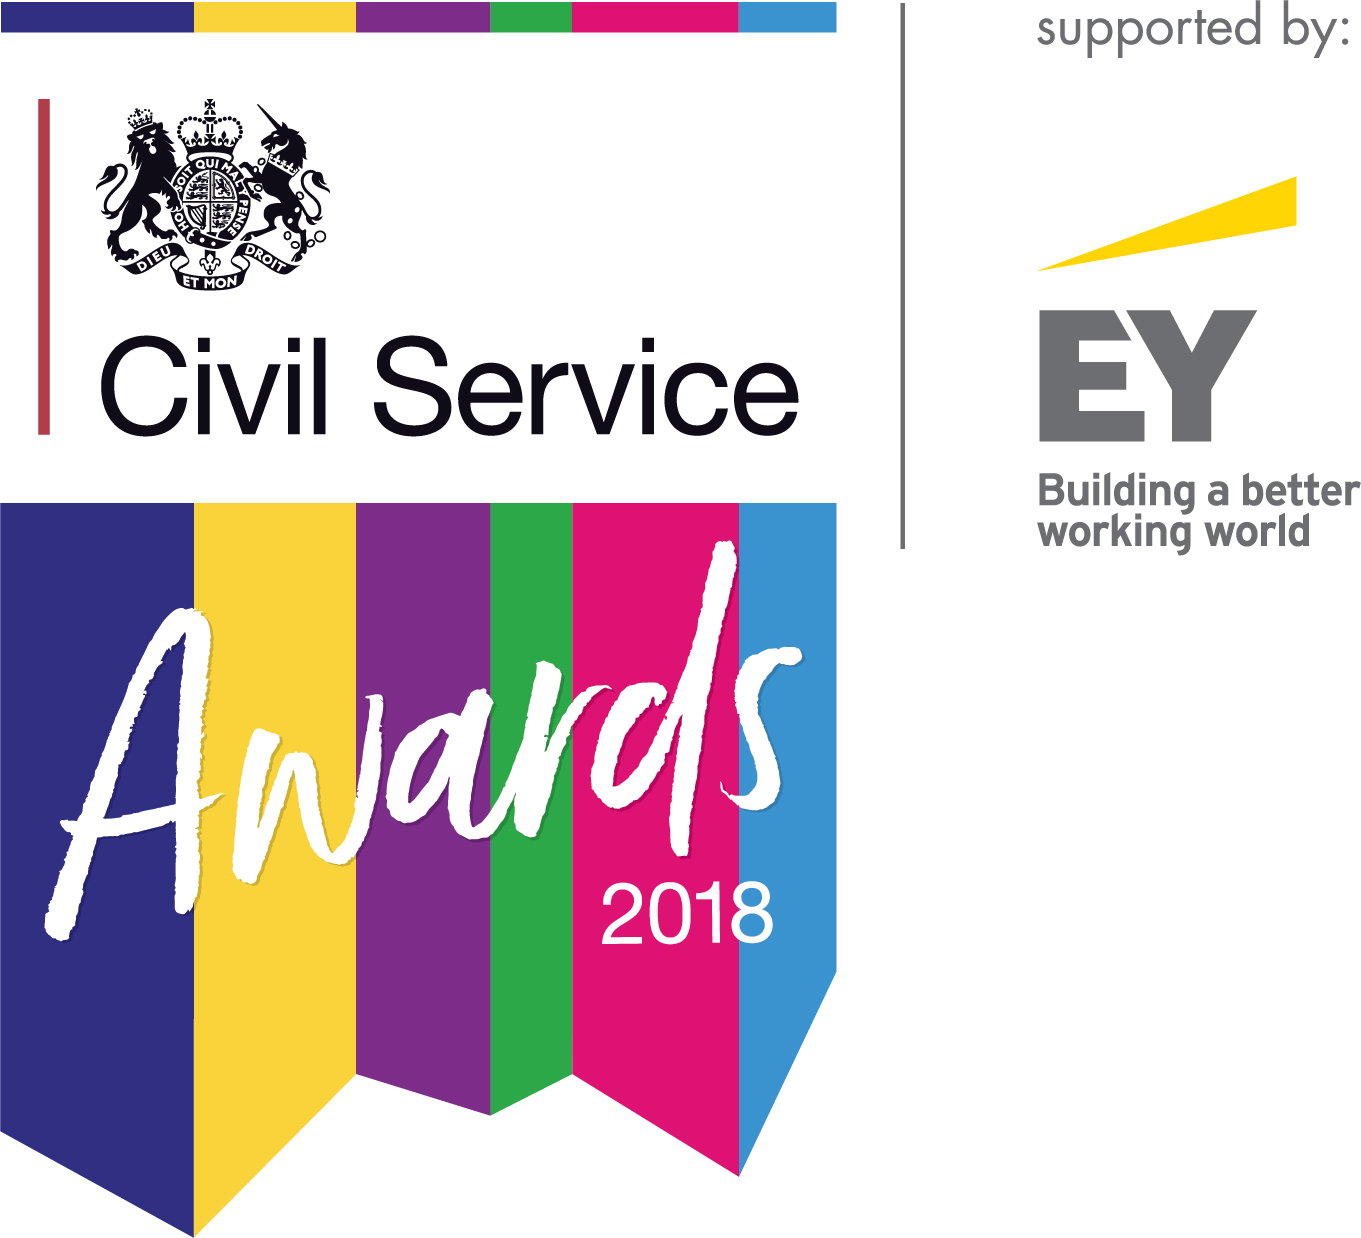 Civil Service Awards 2018 | Prestigious cross-government programme to recognise the wealth of inspirational individuals